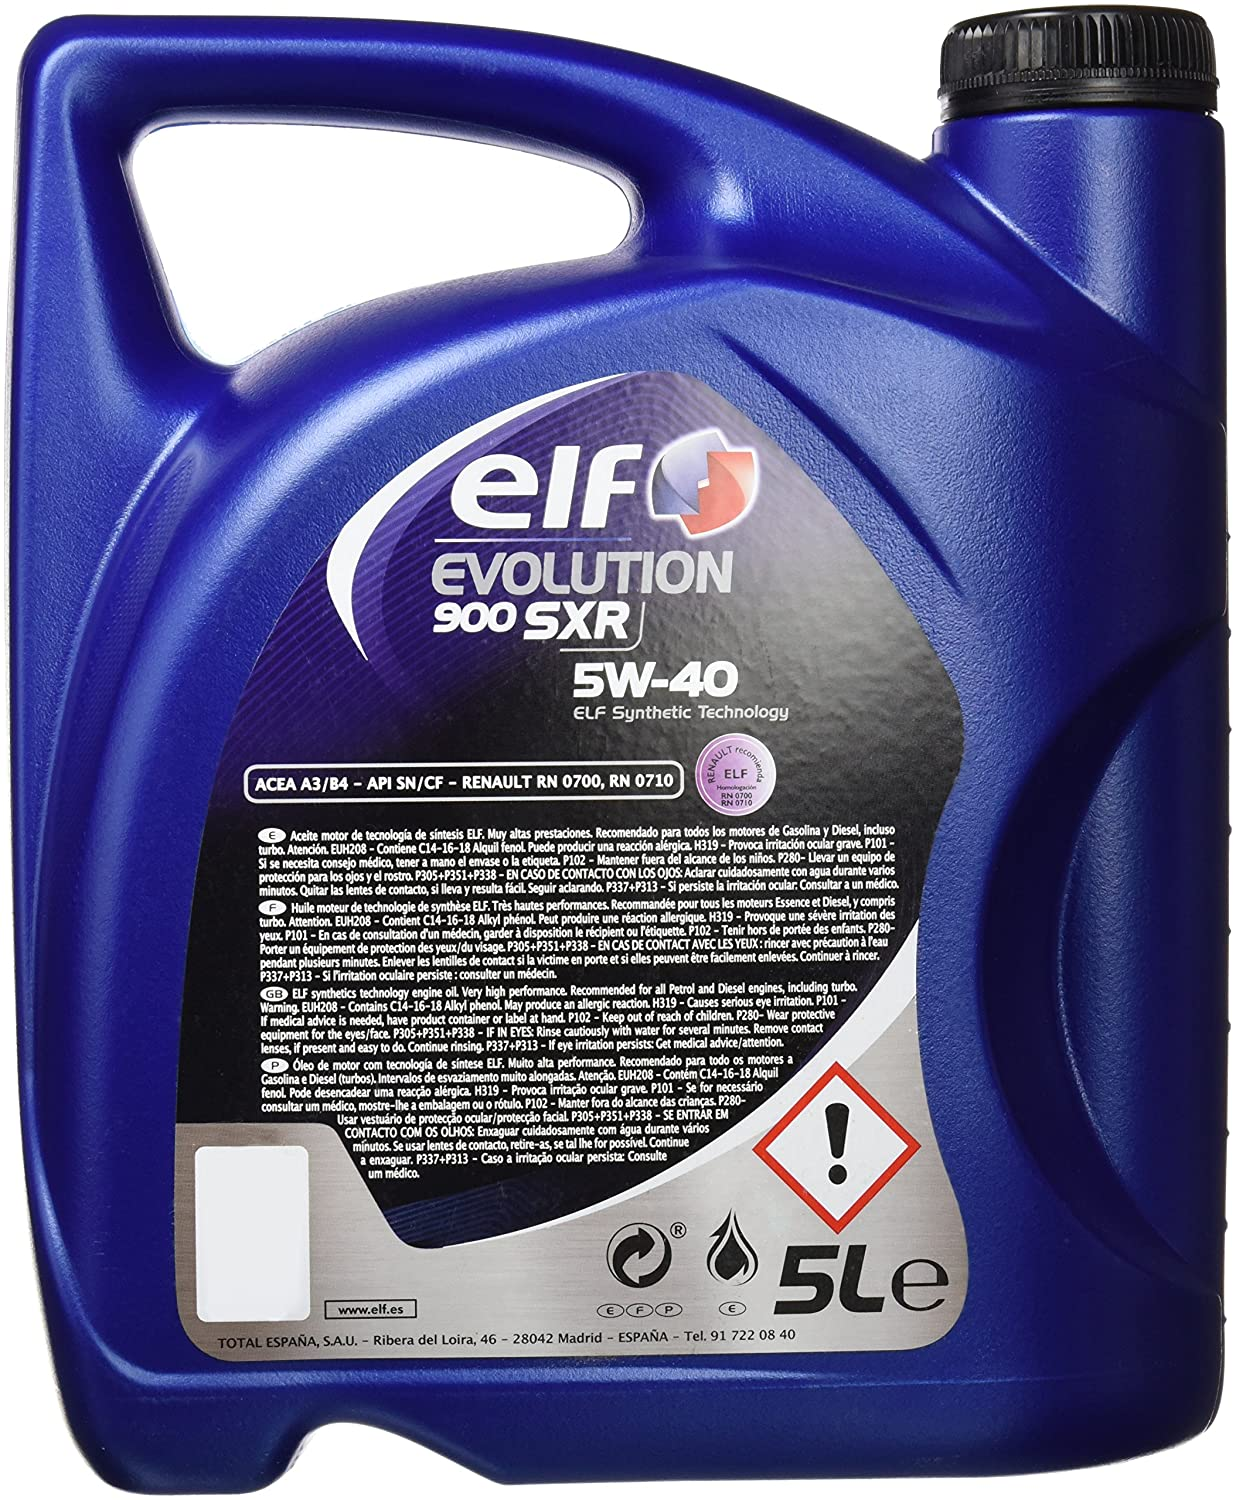 Elf 194888 Evolution 900 SXR 5W40 Lubricante, 5 litros: Amazon.es: Coche y moto